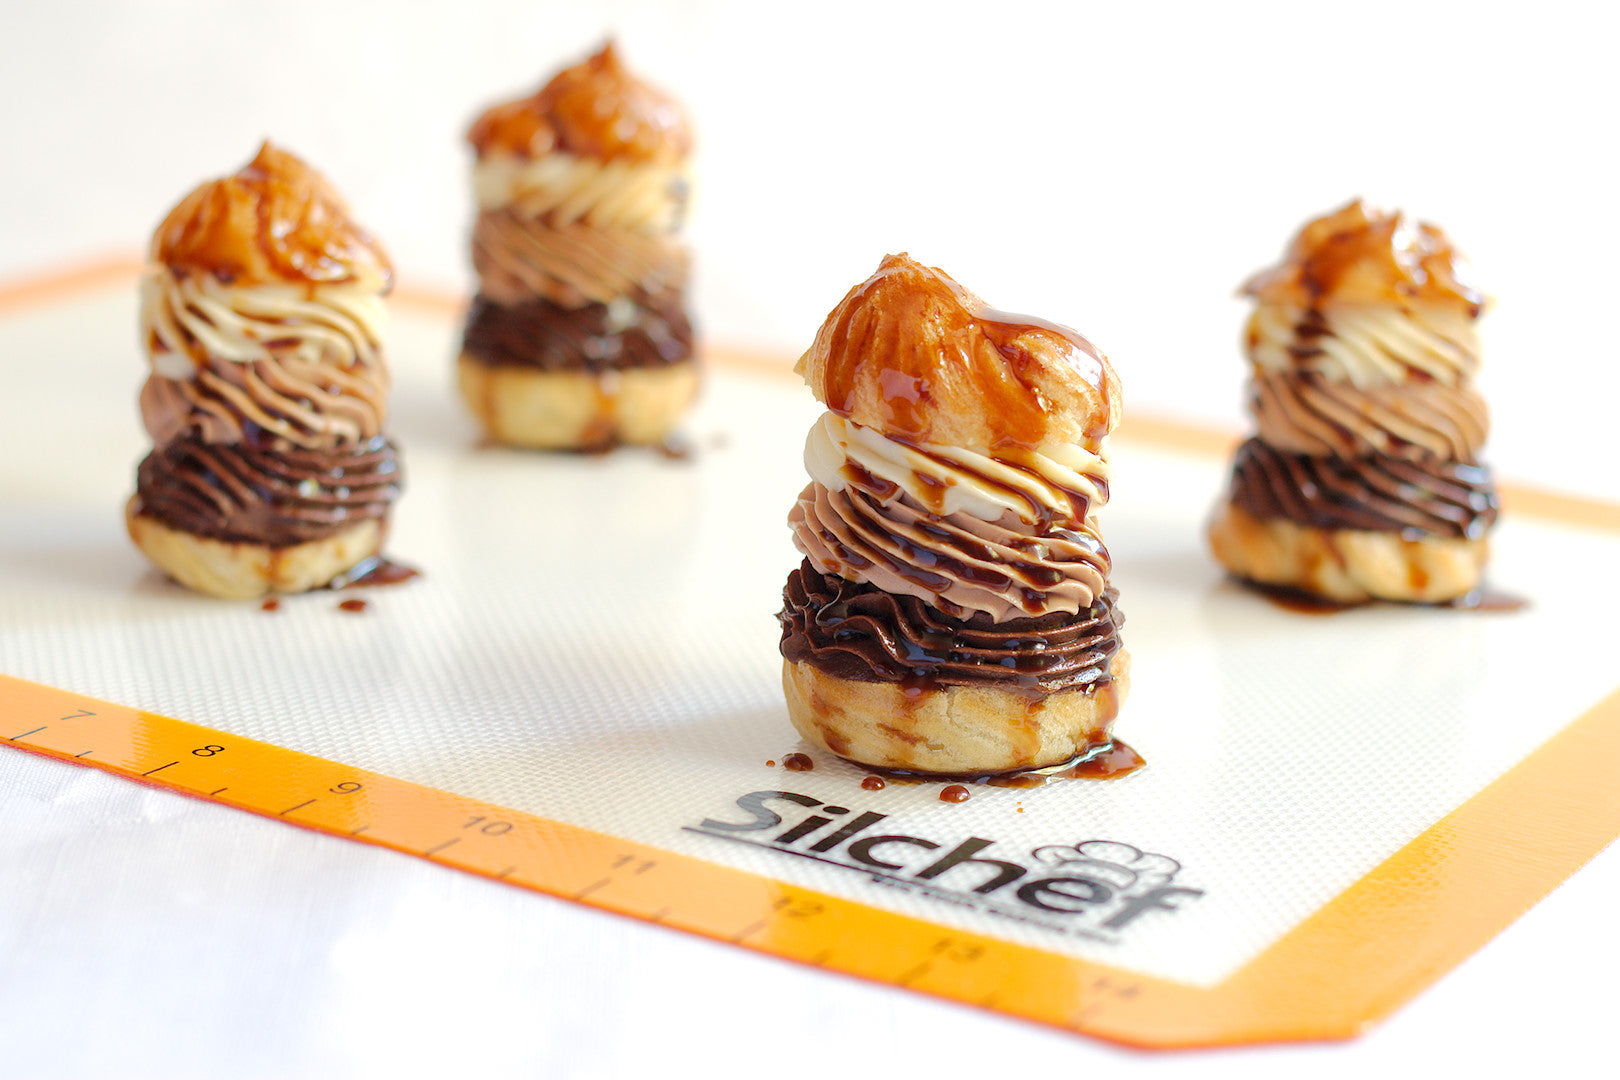 Triple chocolate cream puffs with caramel sauce